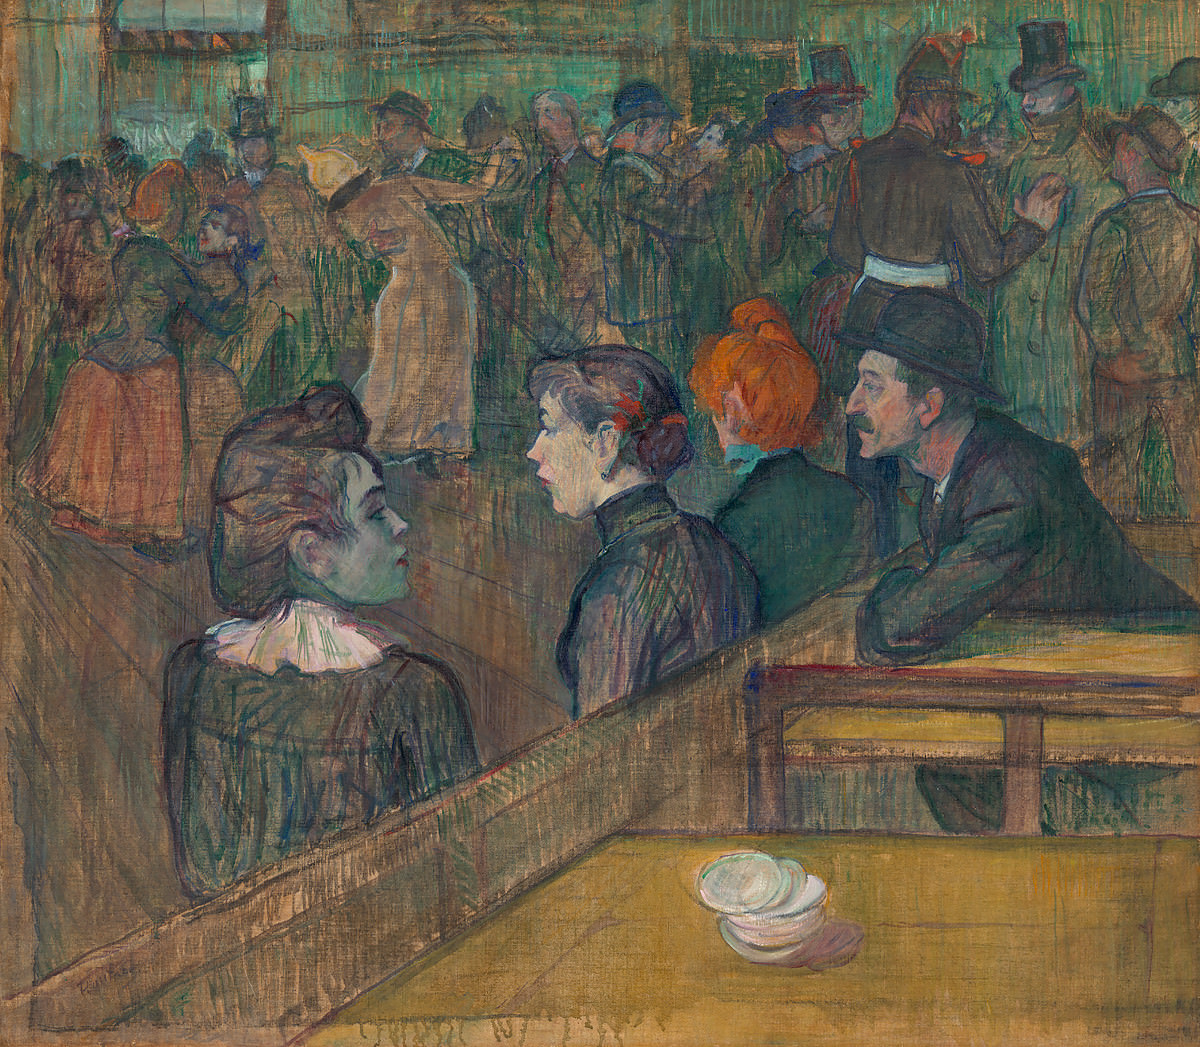 Figue. 11 -Moulin de la Galette, Toulouse-Lautrec, 1889. Photos: Divulgation.